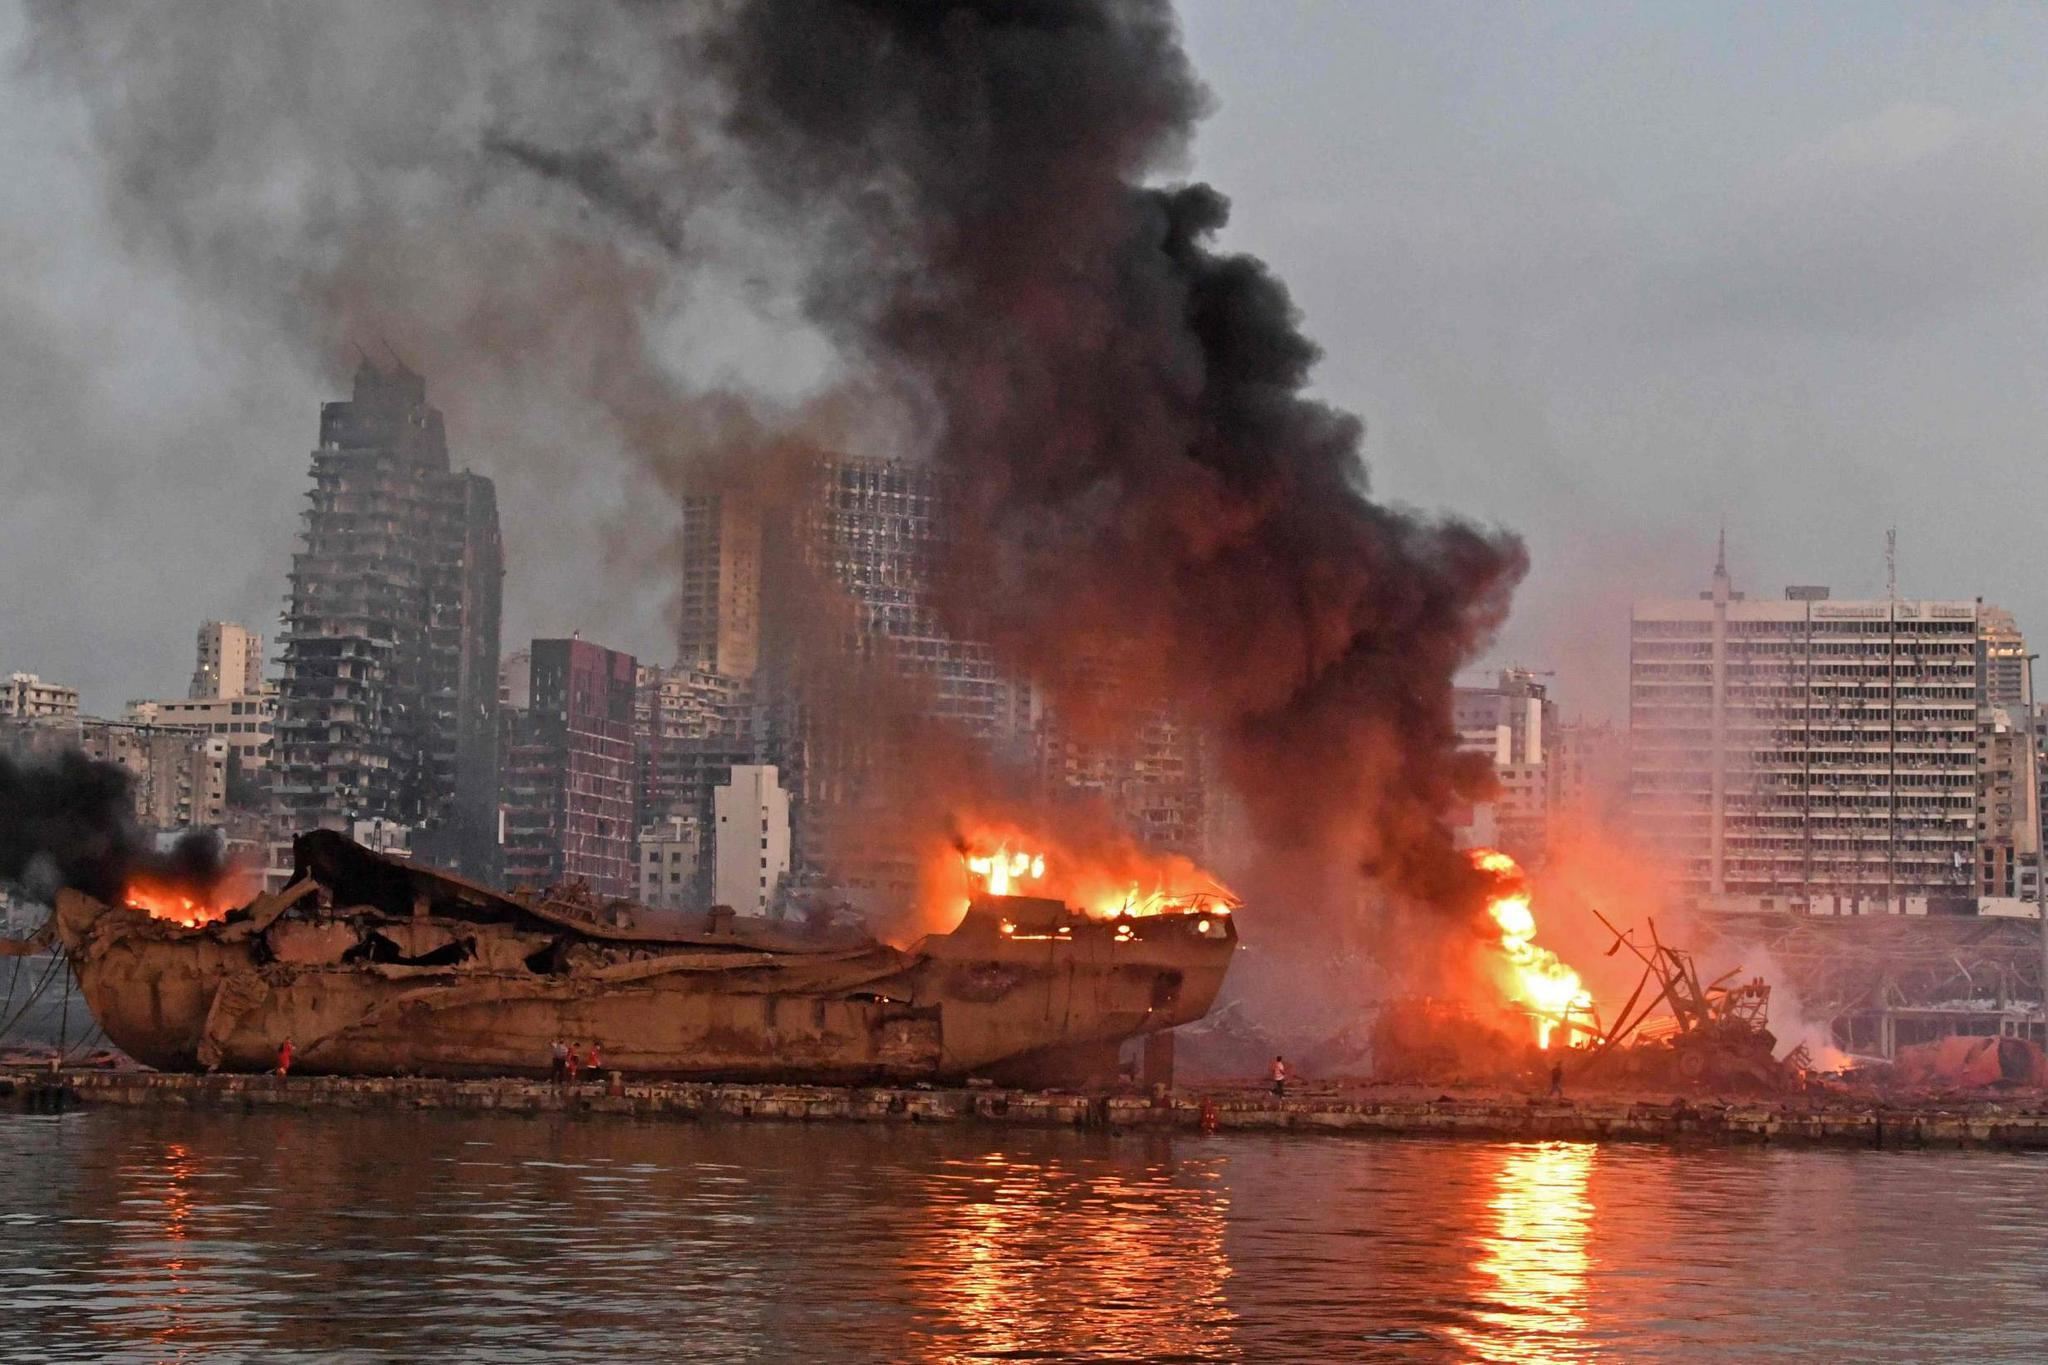 Fire at the port after the explosion (AFP via Getty Images)